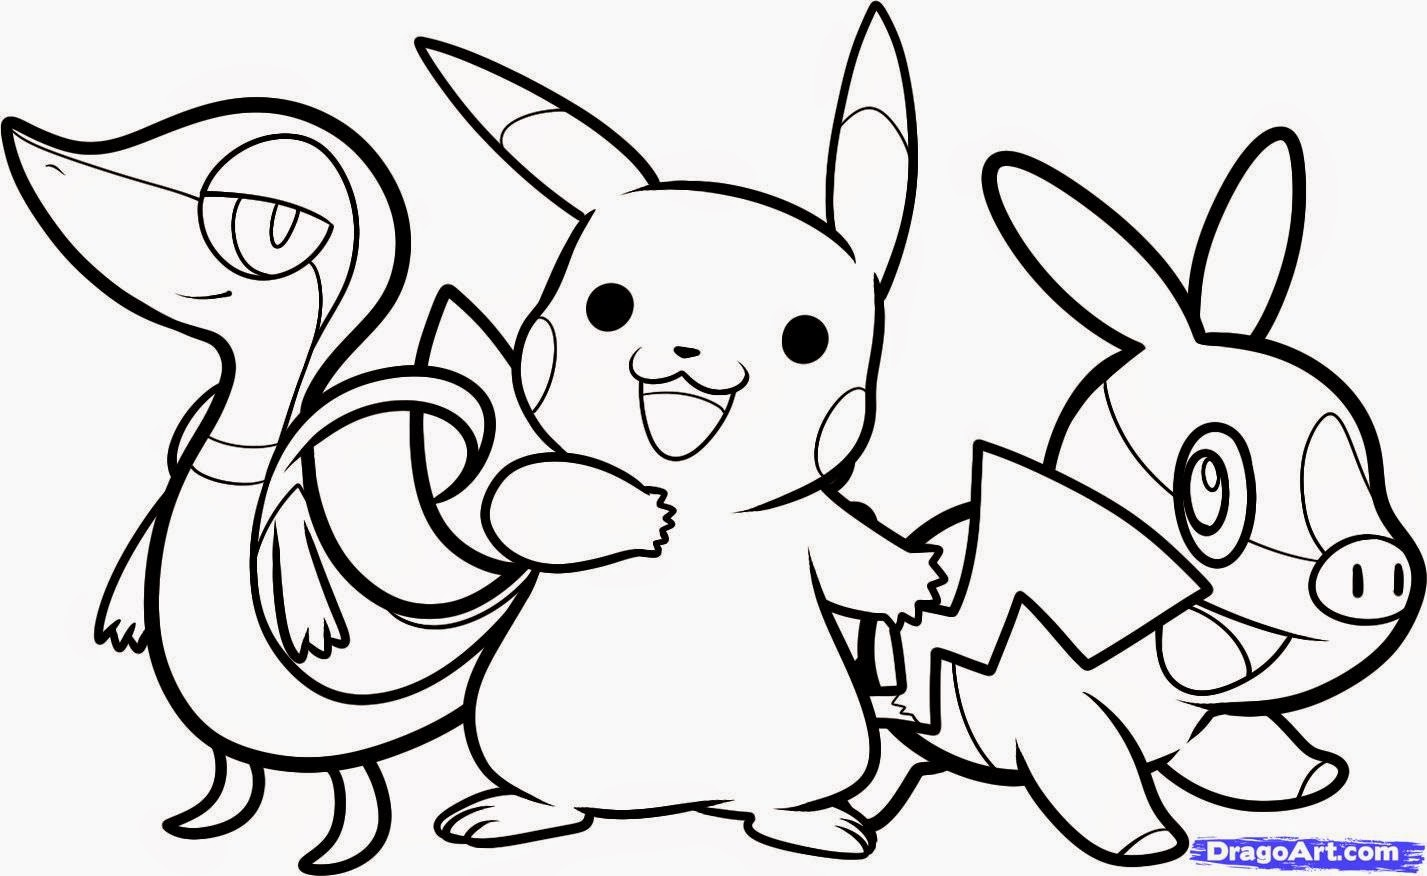 Coloriage de pokemon a imprimer gratuitement liberate - Coloriage pokemon ex ...